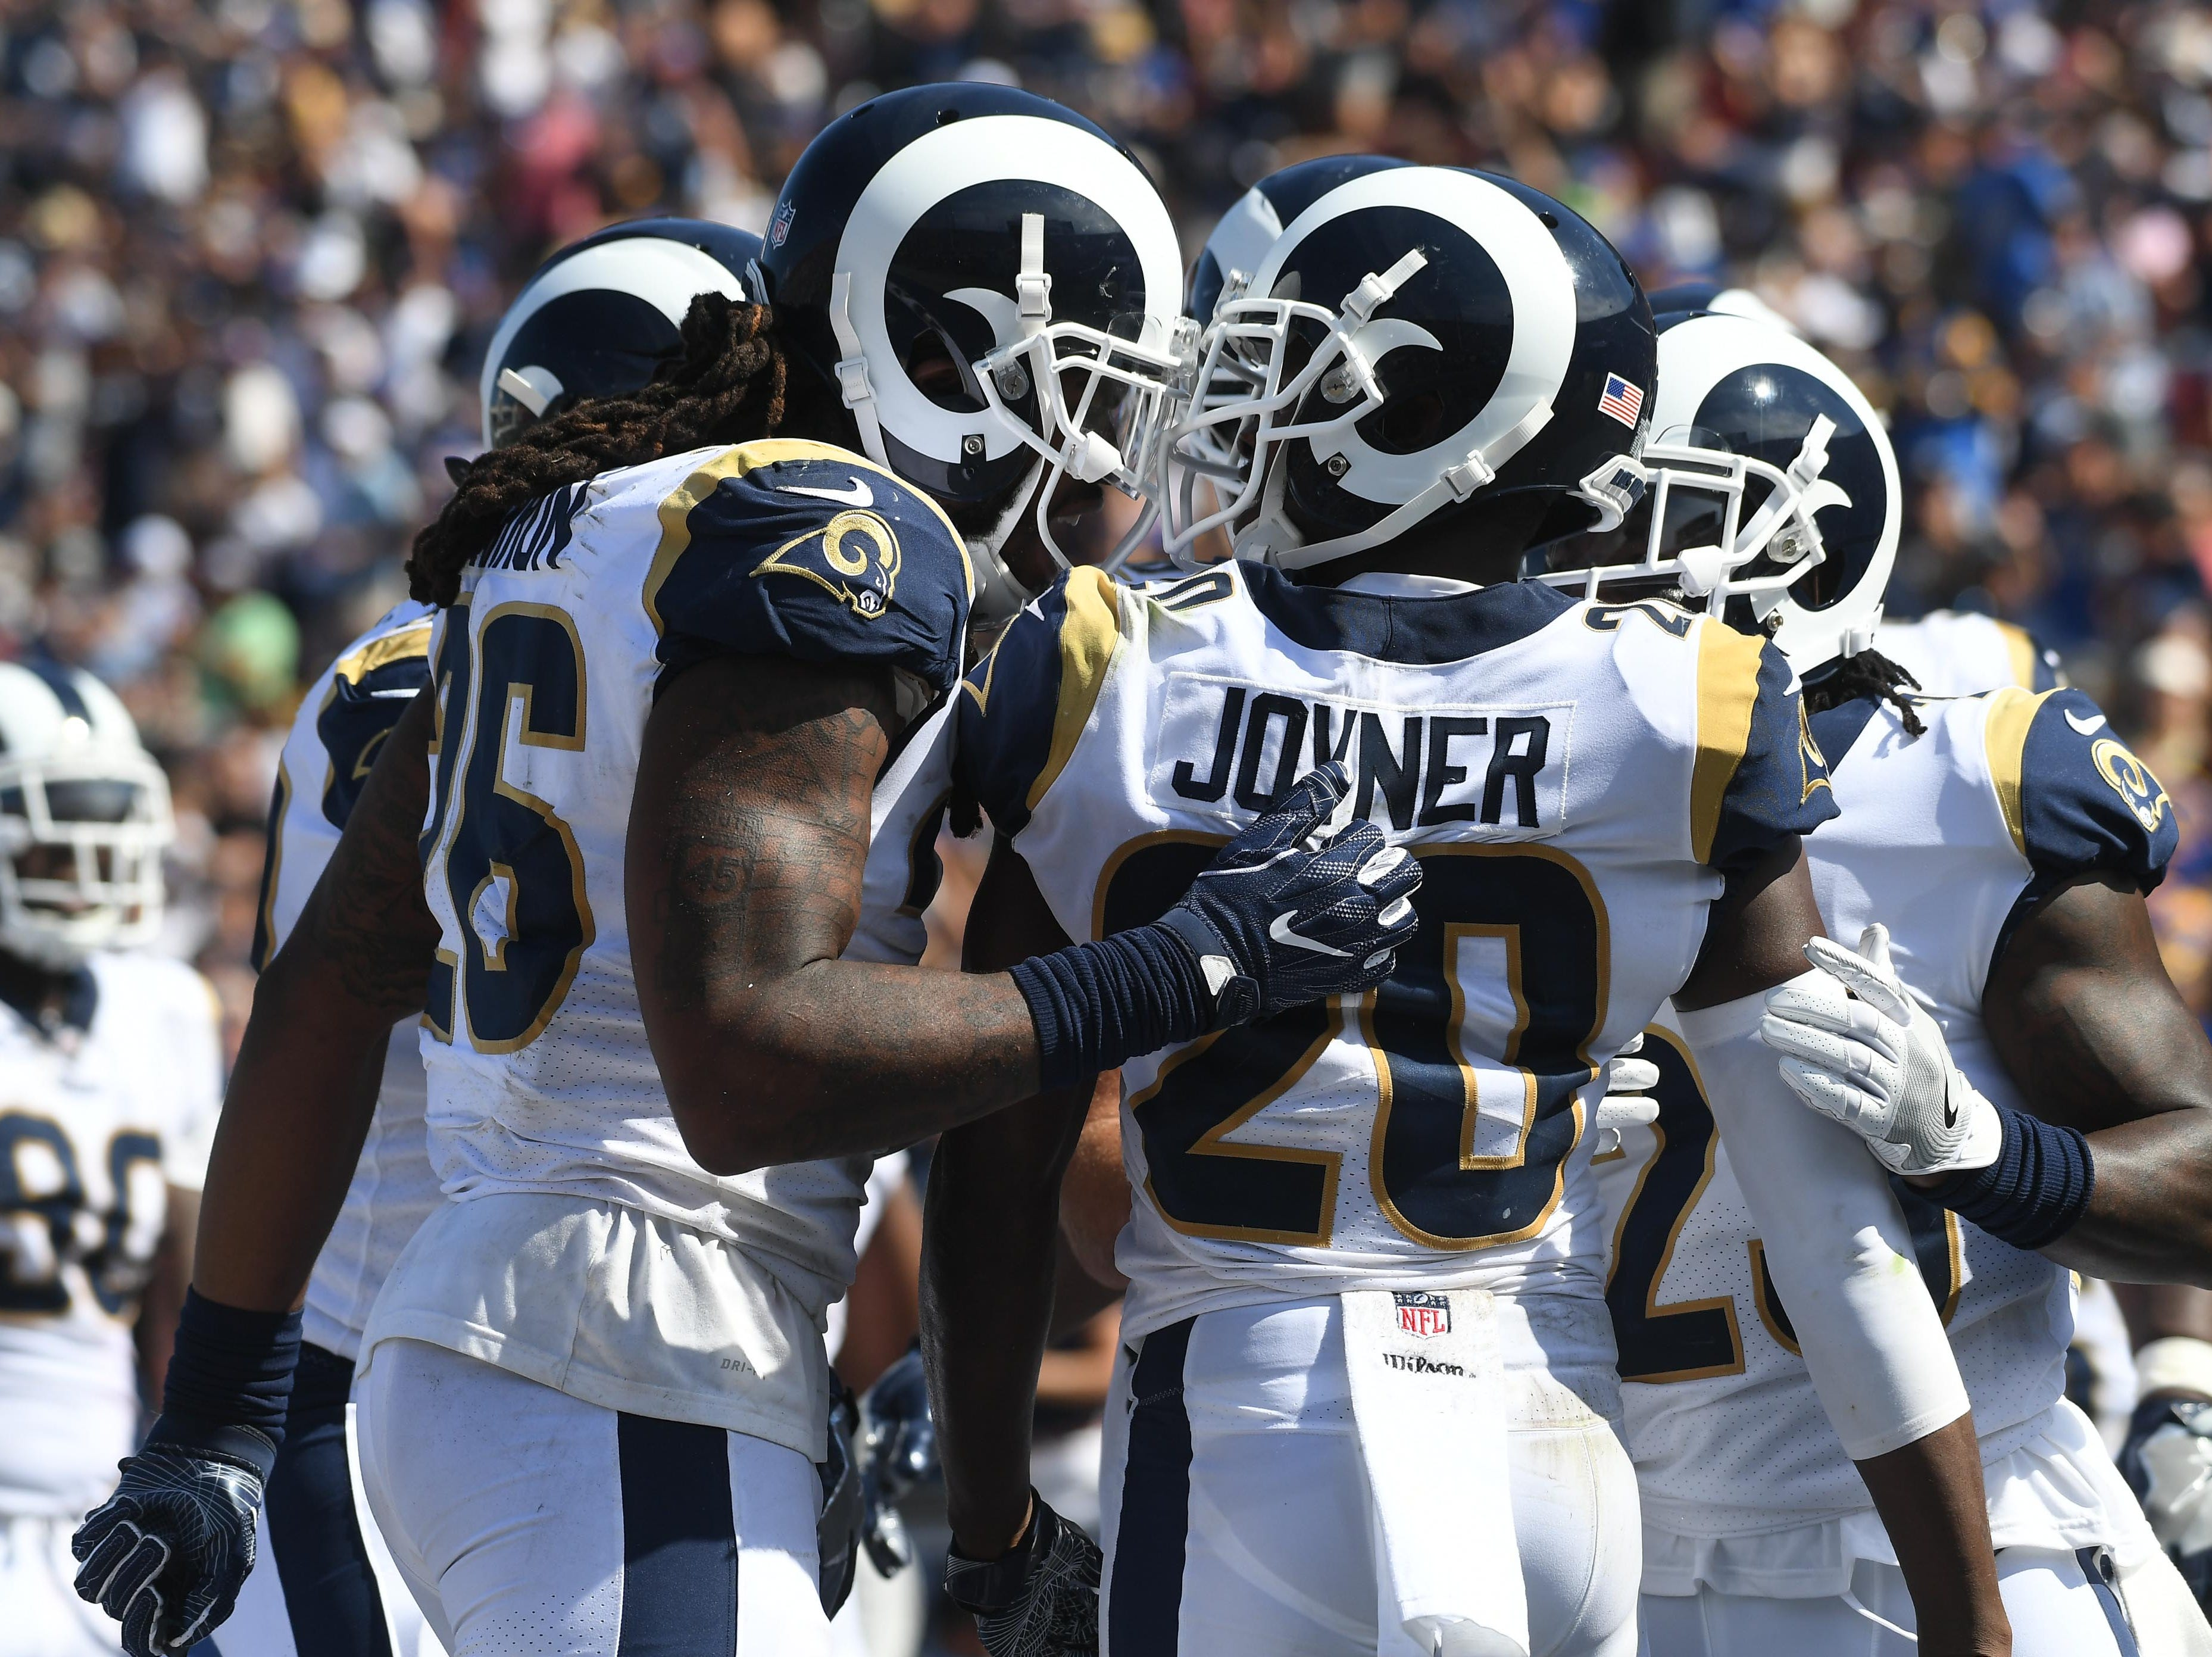 Sep 10, 2017; Los Angeles, CA, USA; Los Angeles Rams cornerback Lamarcus Joyner (20) celebrates with teammates after returning an interception for a touchdown against the Indianapolis Colts in the second half of a NFL football game at Los Angeles Memorial Coliseum. Mandatory Credit: Richard Mackson-USA TODAY Sports